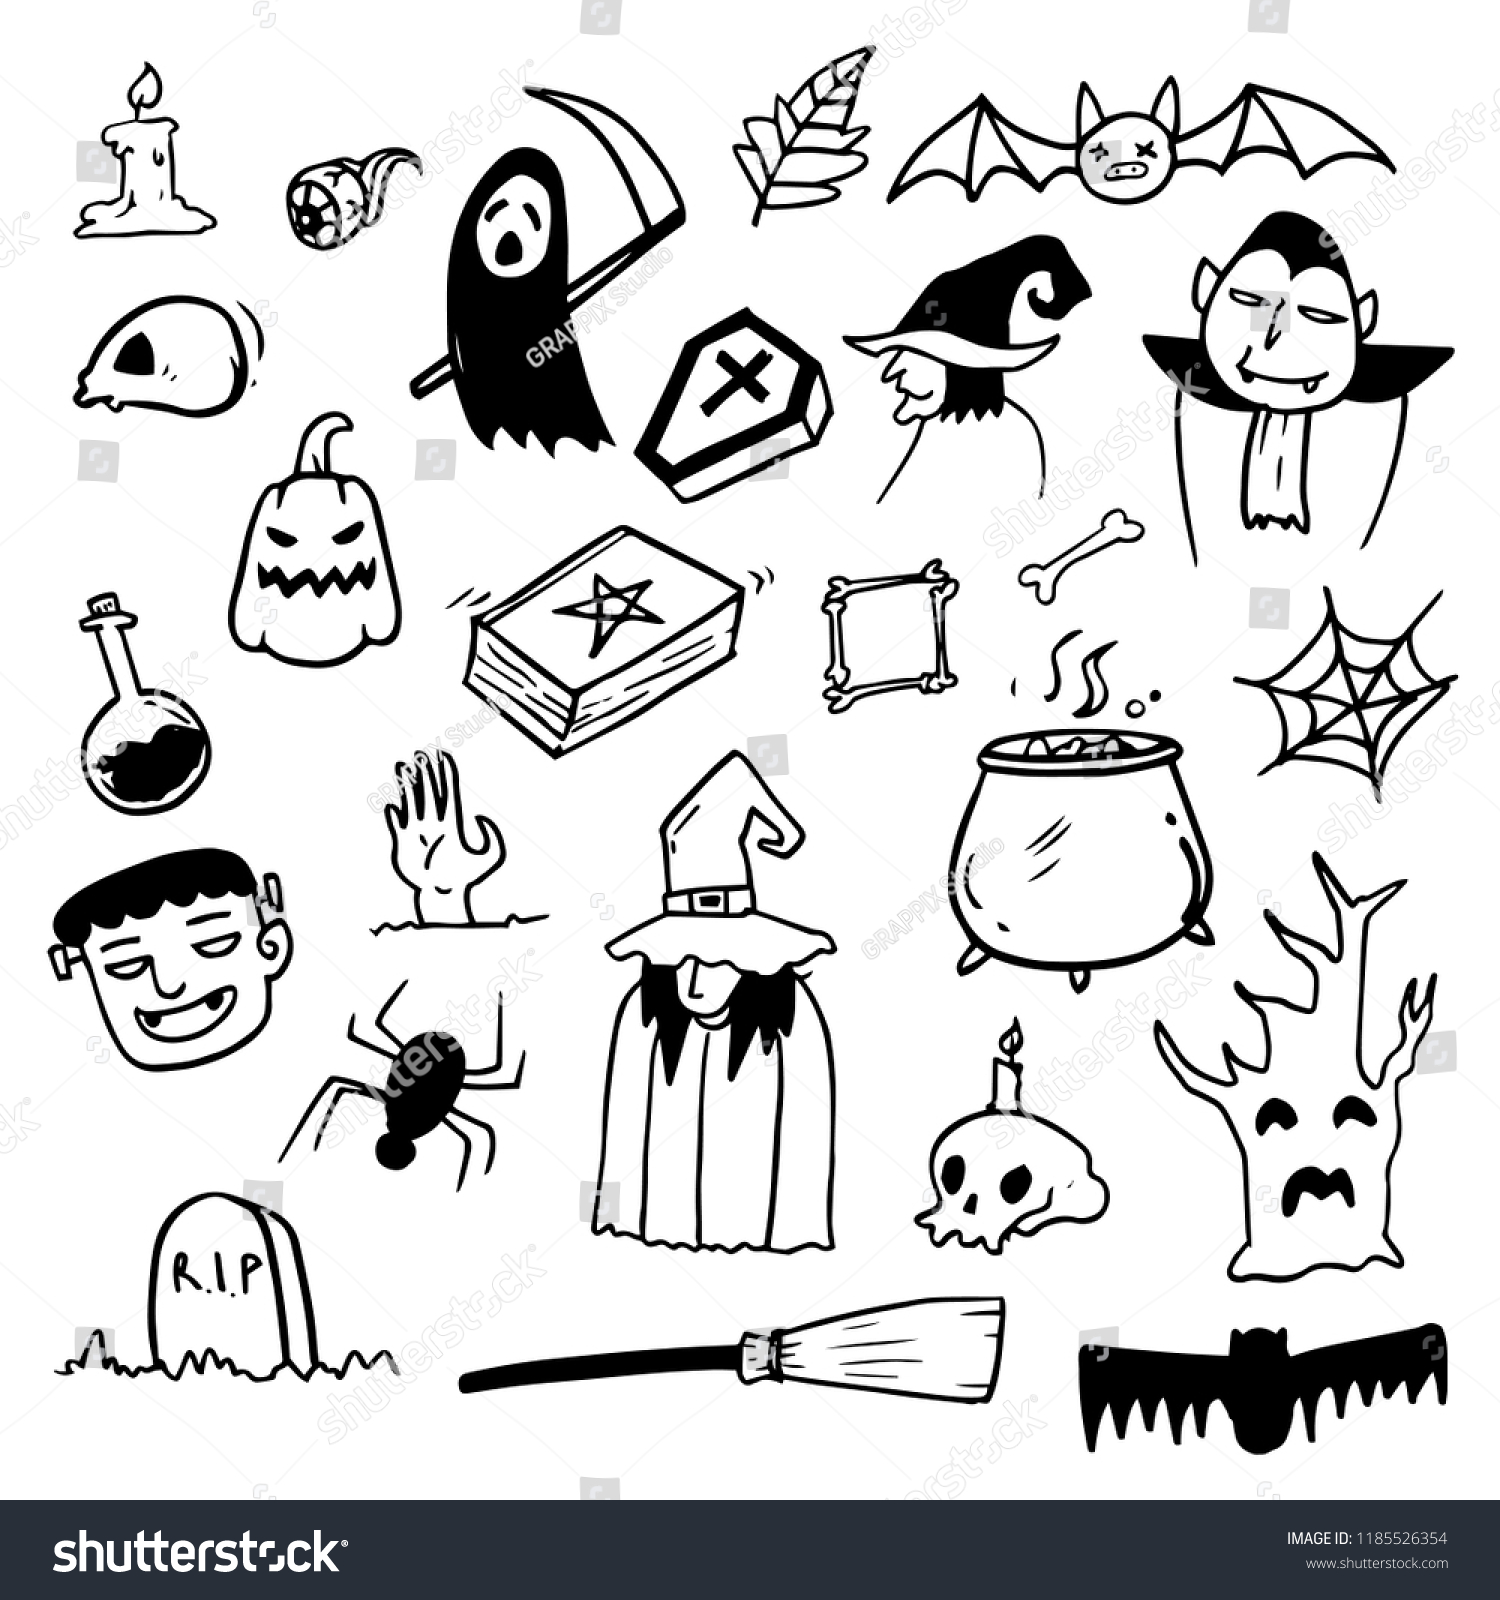 28+ Cool Halloween Drawing Ideas PNG